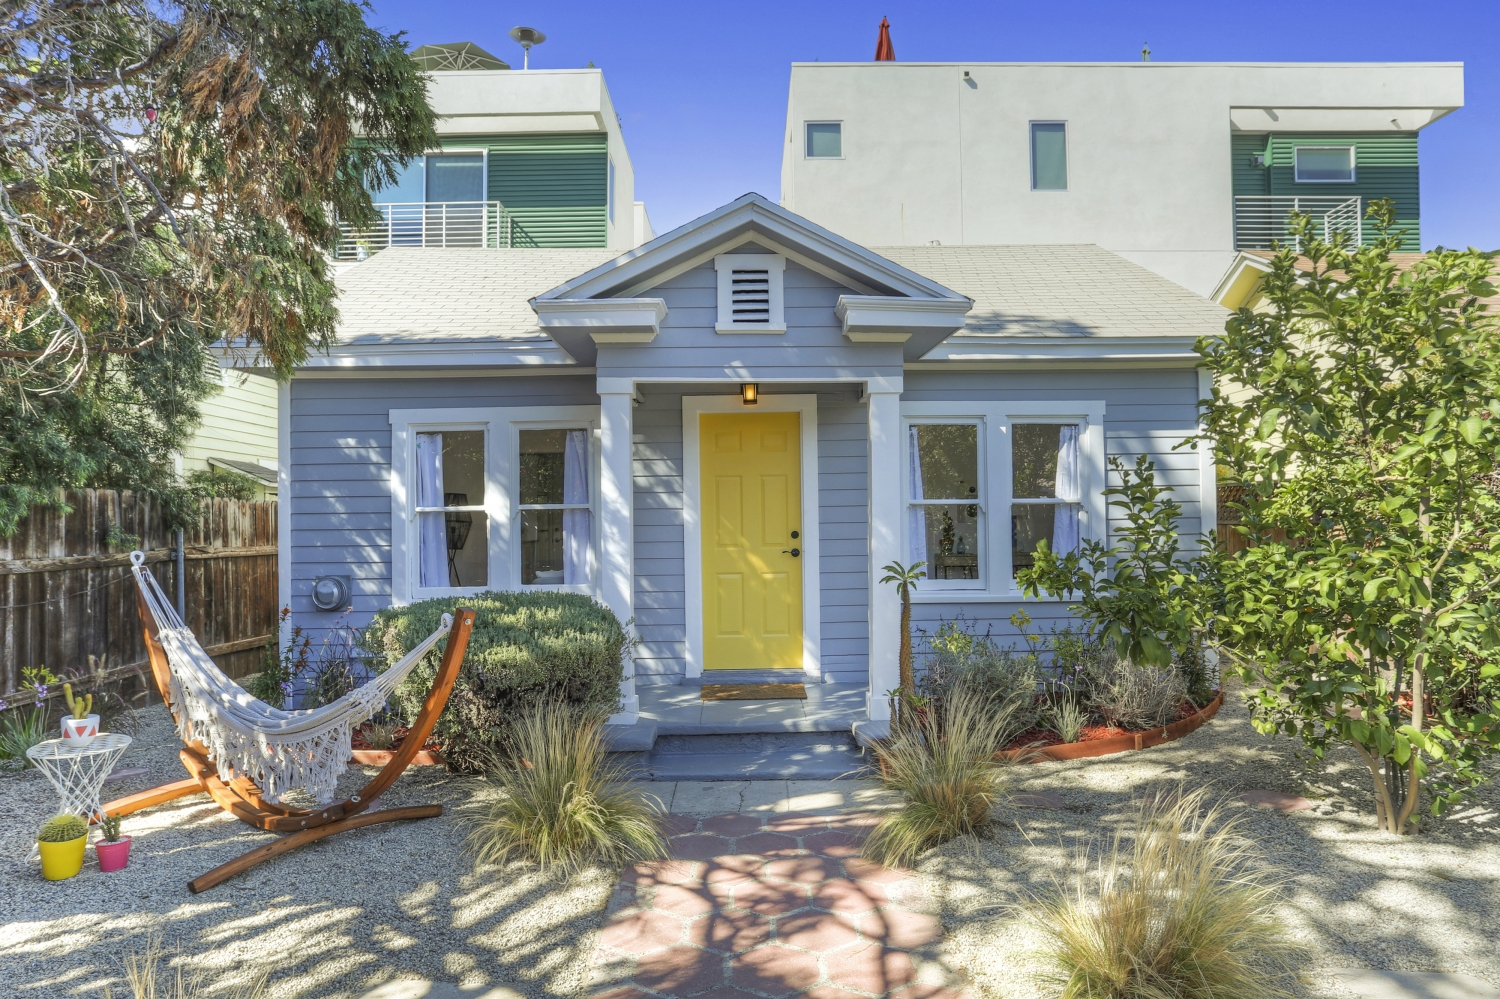 CUTEST BUNGALOW IN LOS FELIZ. TINY IN SIZE, BUT LARGE ON LIVING!